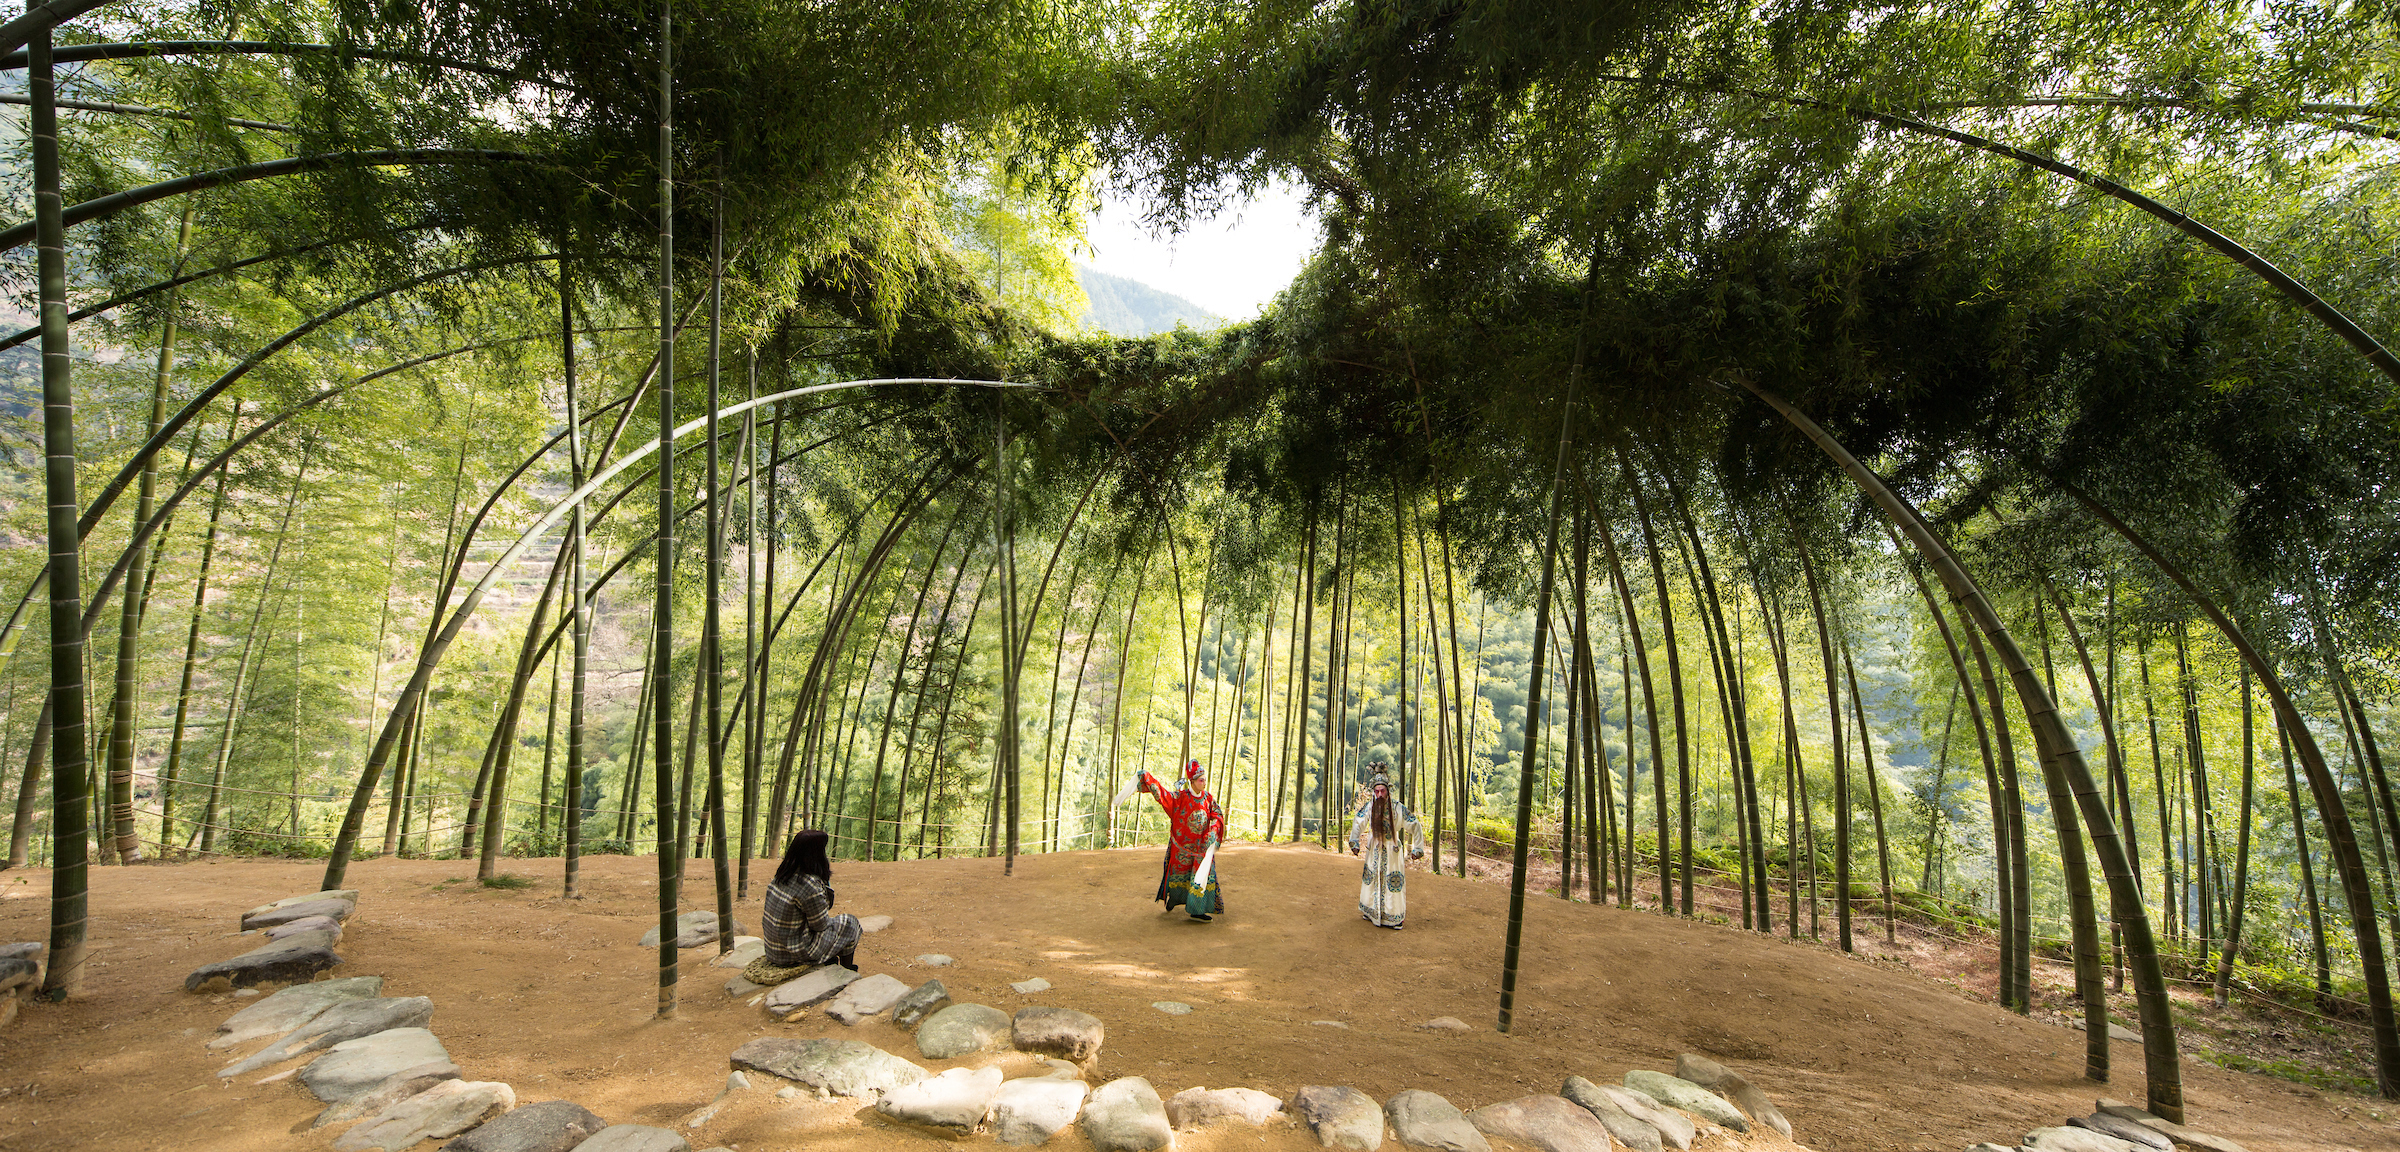 Tall, green bamboo plants are trained into a dome shape to create a theater